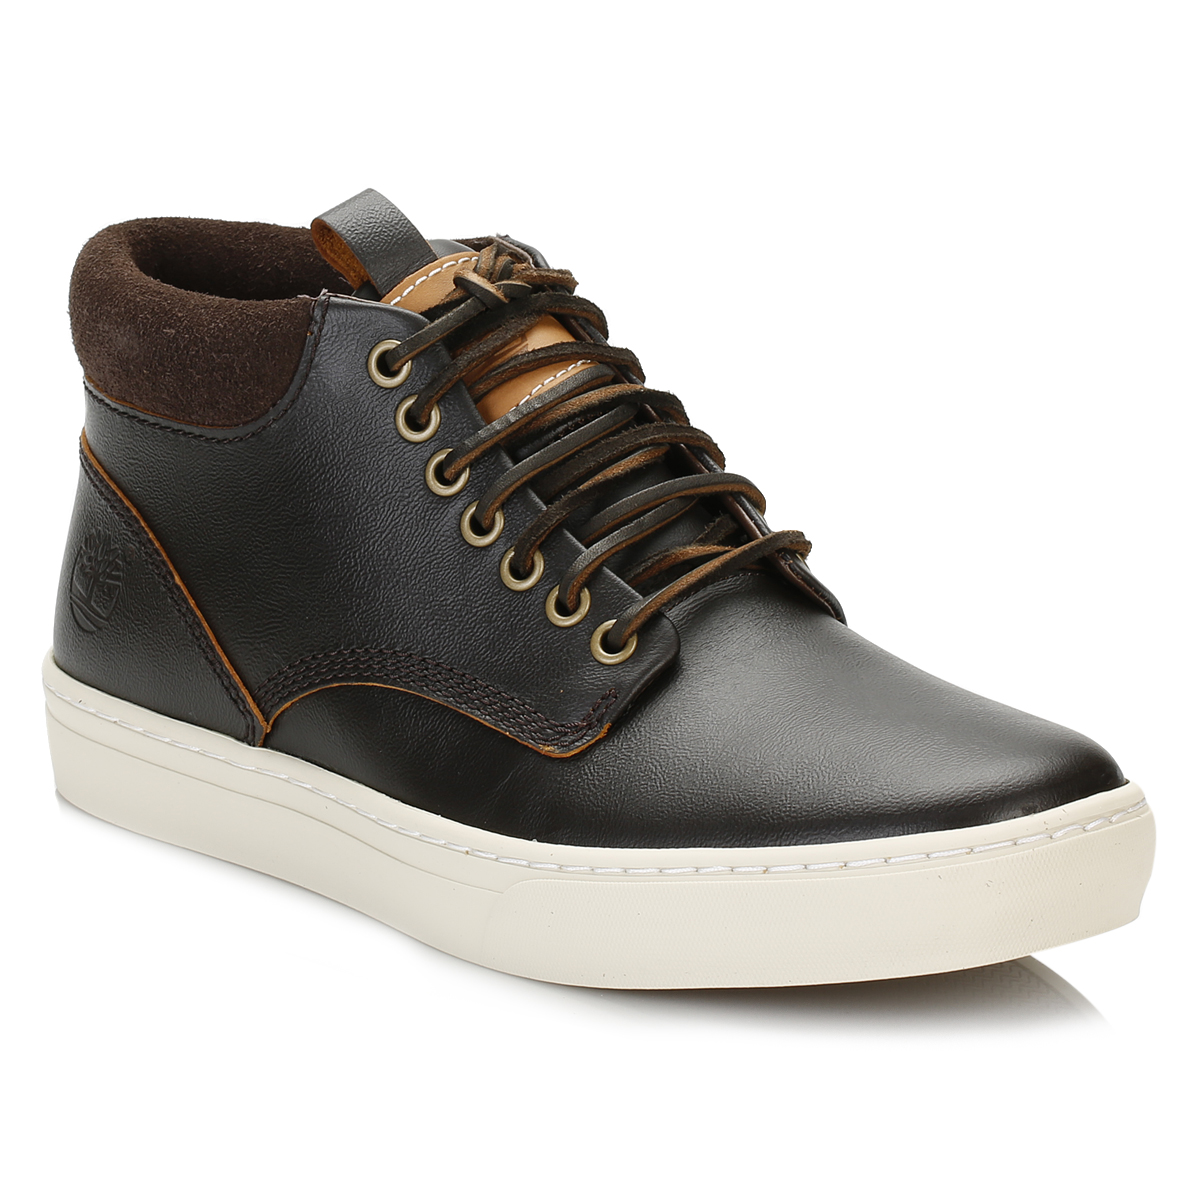 Timberland Chukka Ankle Boots Leather Lace Up Casual Winter High Shoes Mens Shoes